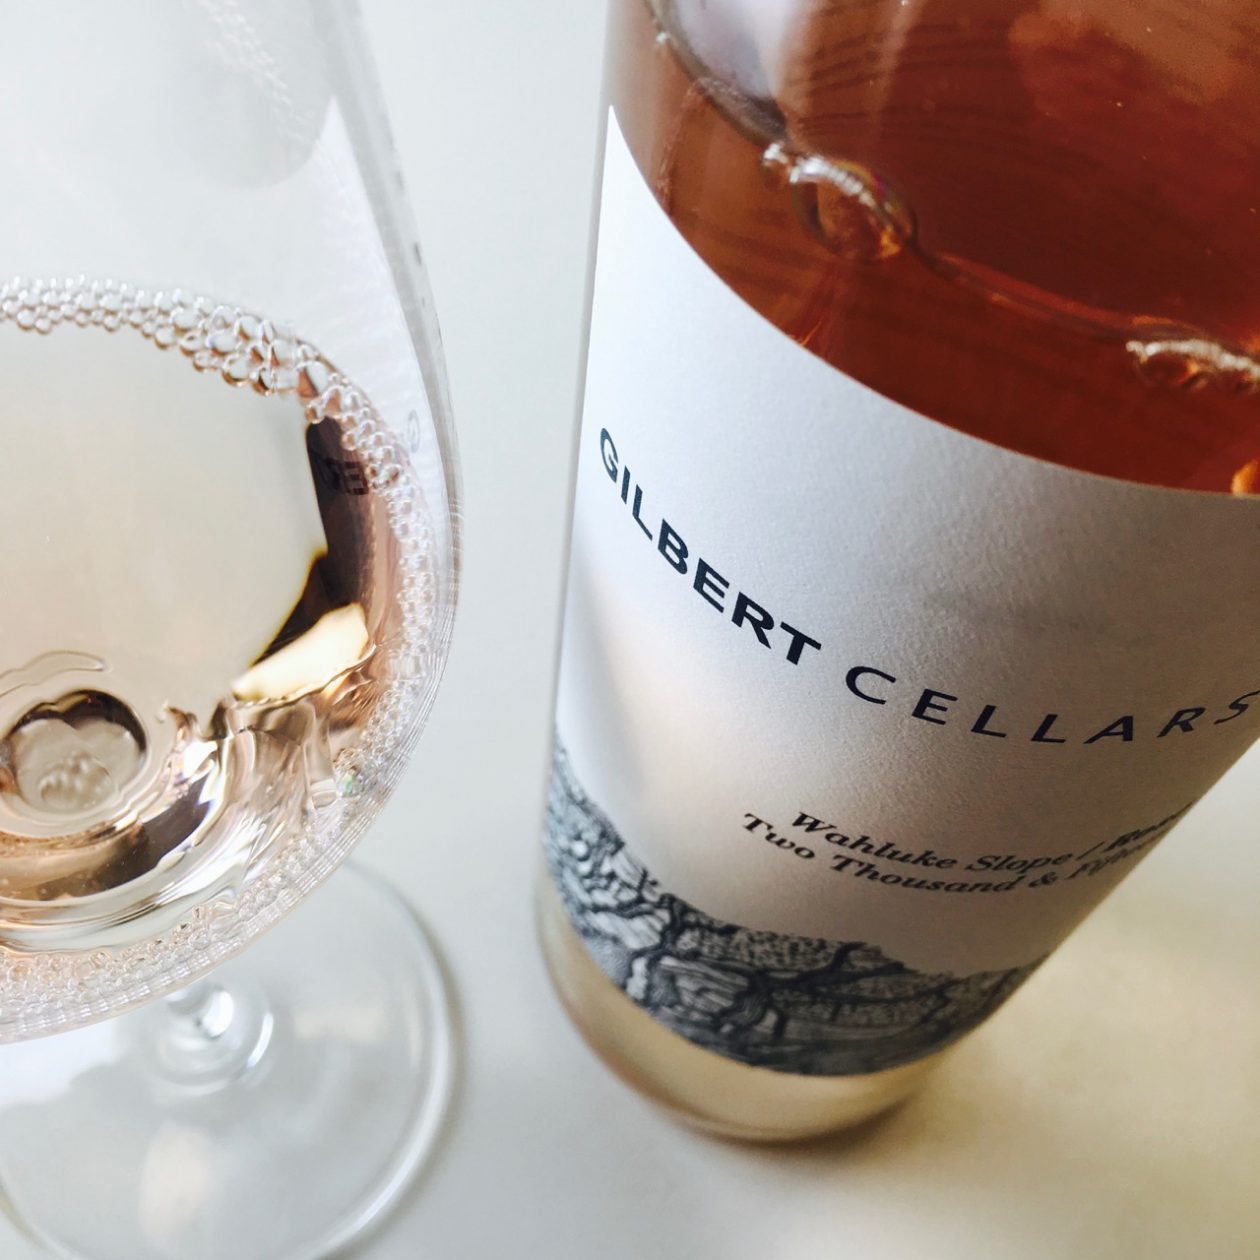 2015 Gilbert Cellars Rosé Wahluke Slope